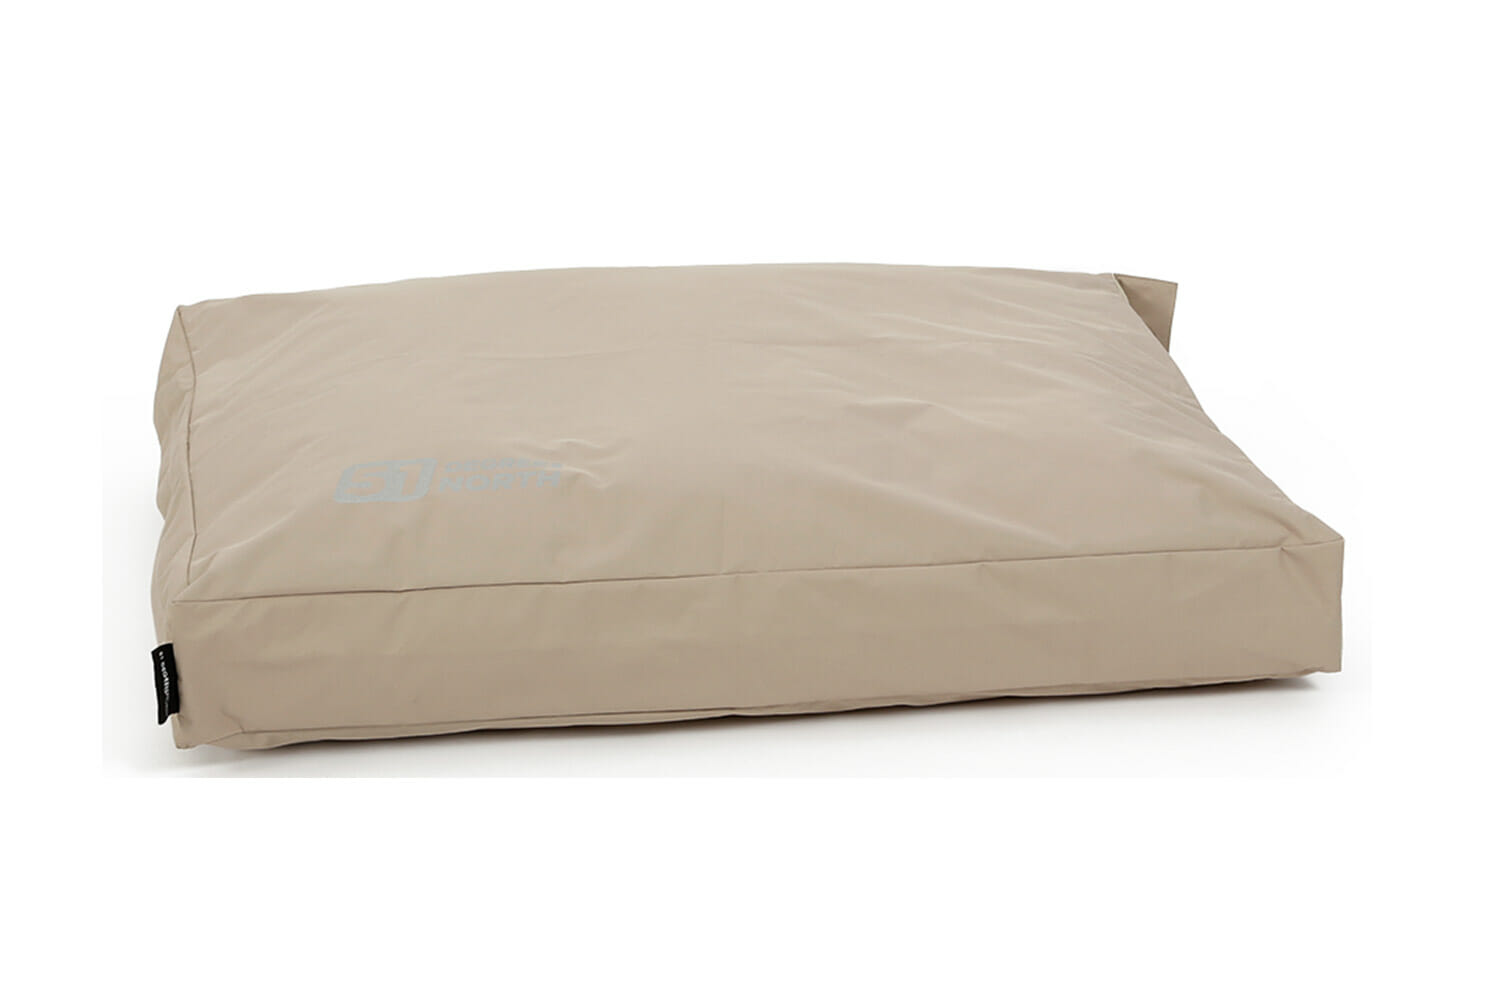 51DegreesNorth Storm Box Pillow Light sand